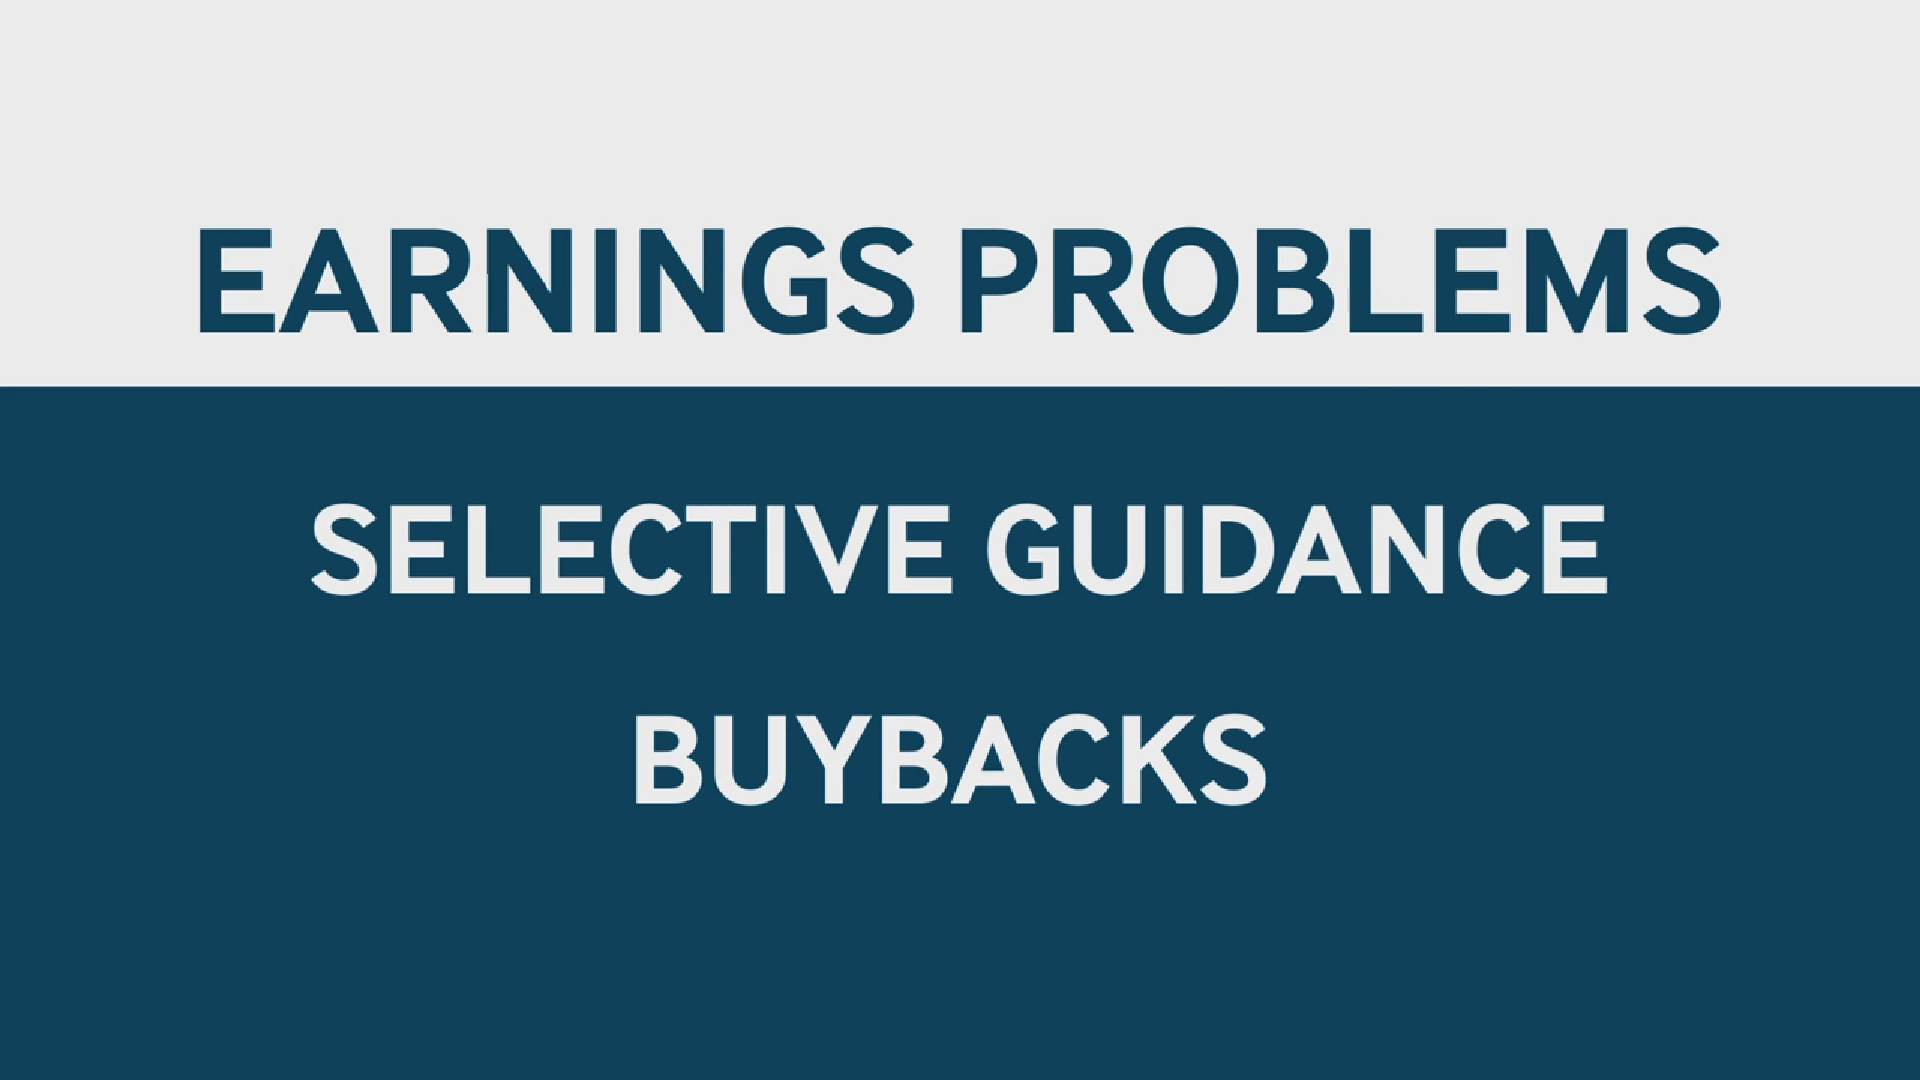 Furthermore, a lot of companies that shouldn't be buying back stock are buying back stock.